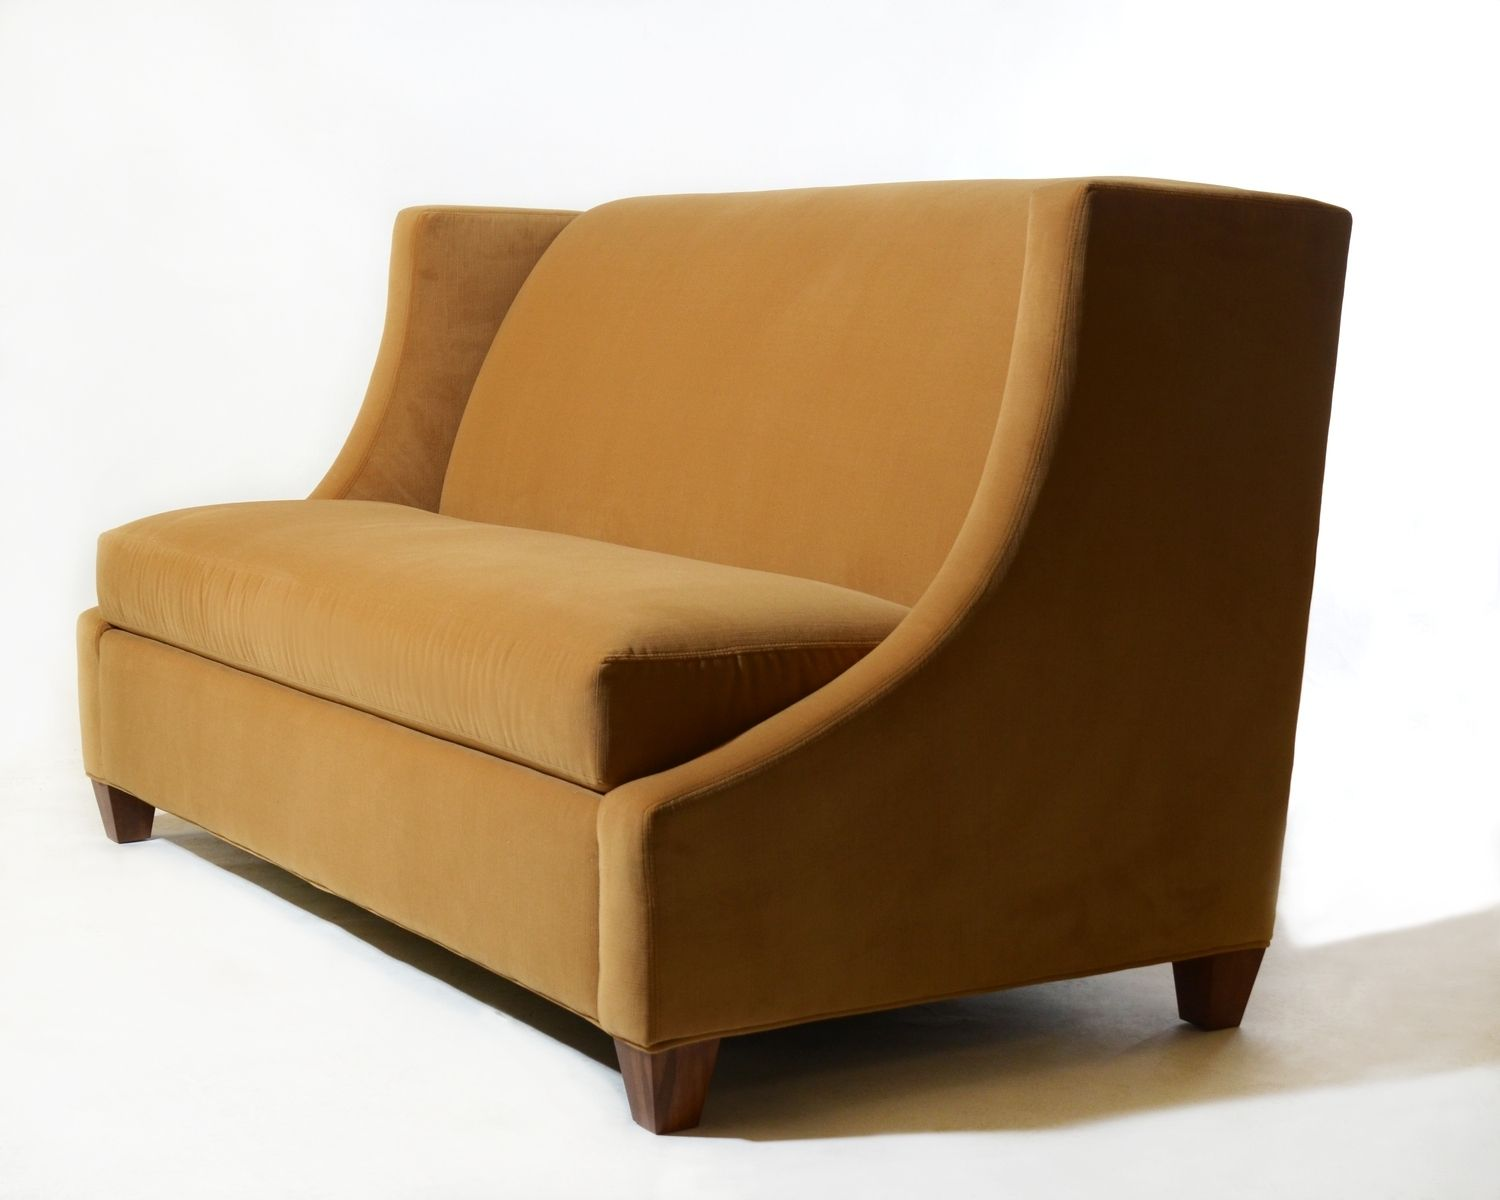 Hand Made Boutique Hotel Sleeper Sofa By Access Designer